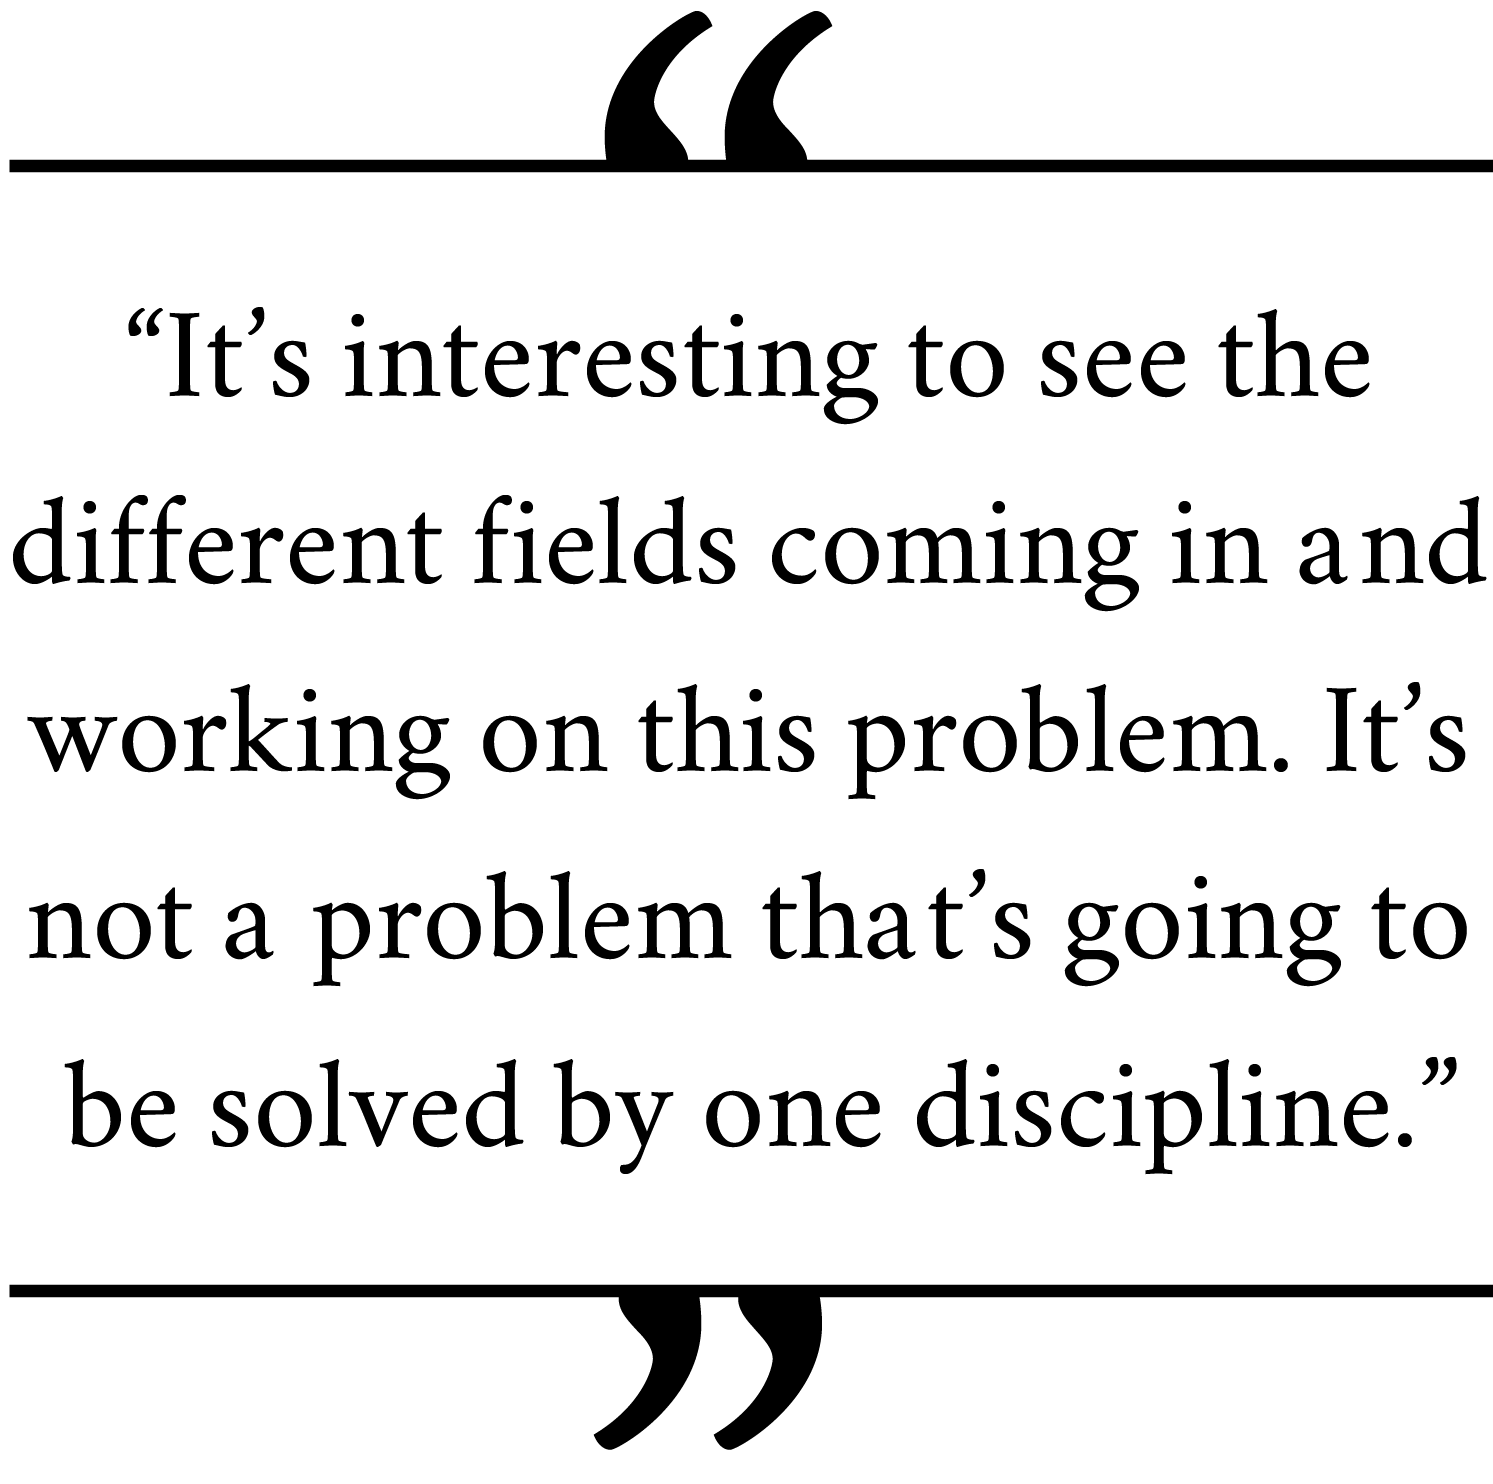 'It's-interesting-to-see-the-different-fields-coming-in-and-working-on-this-problem.-It's-not-a-problem-that's-going-to-be-solved-by-one-discipline.'